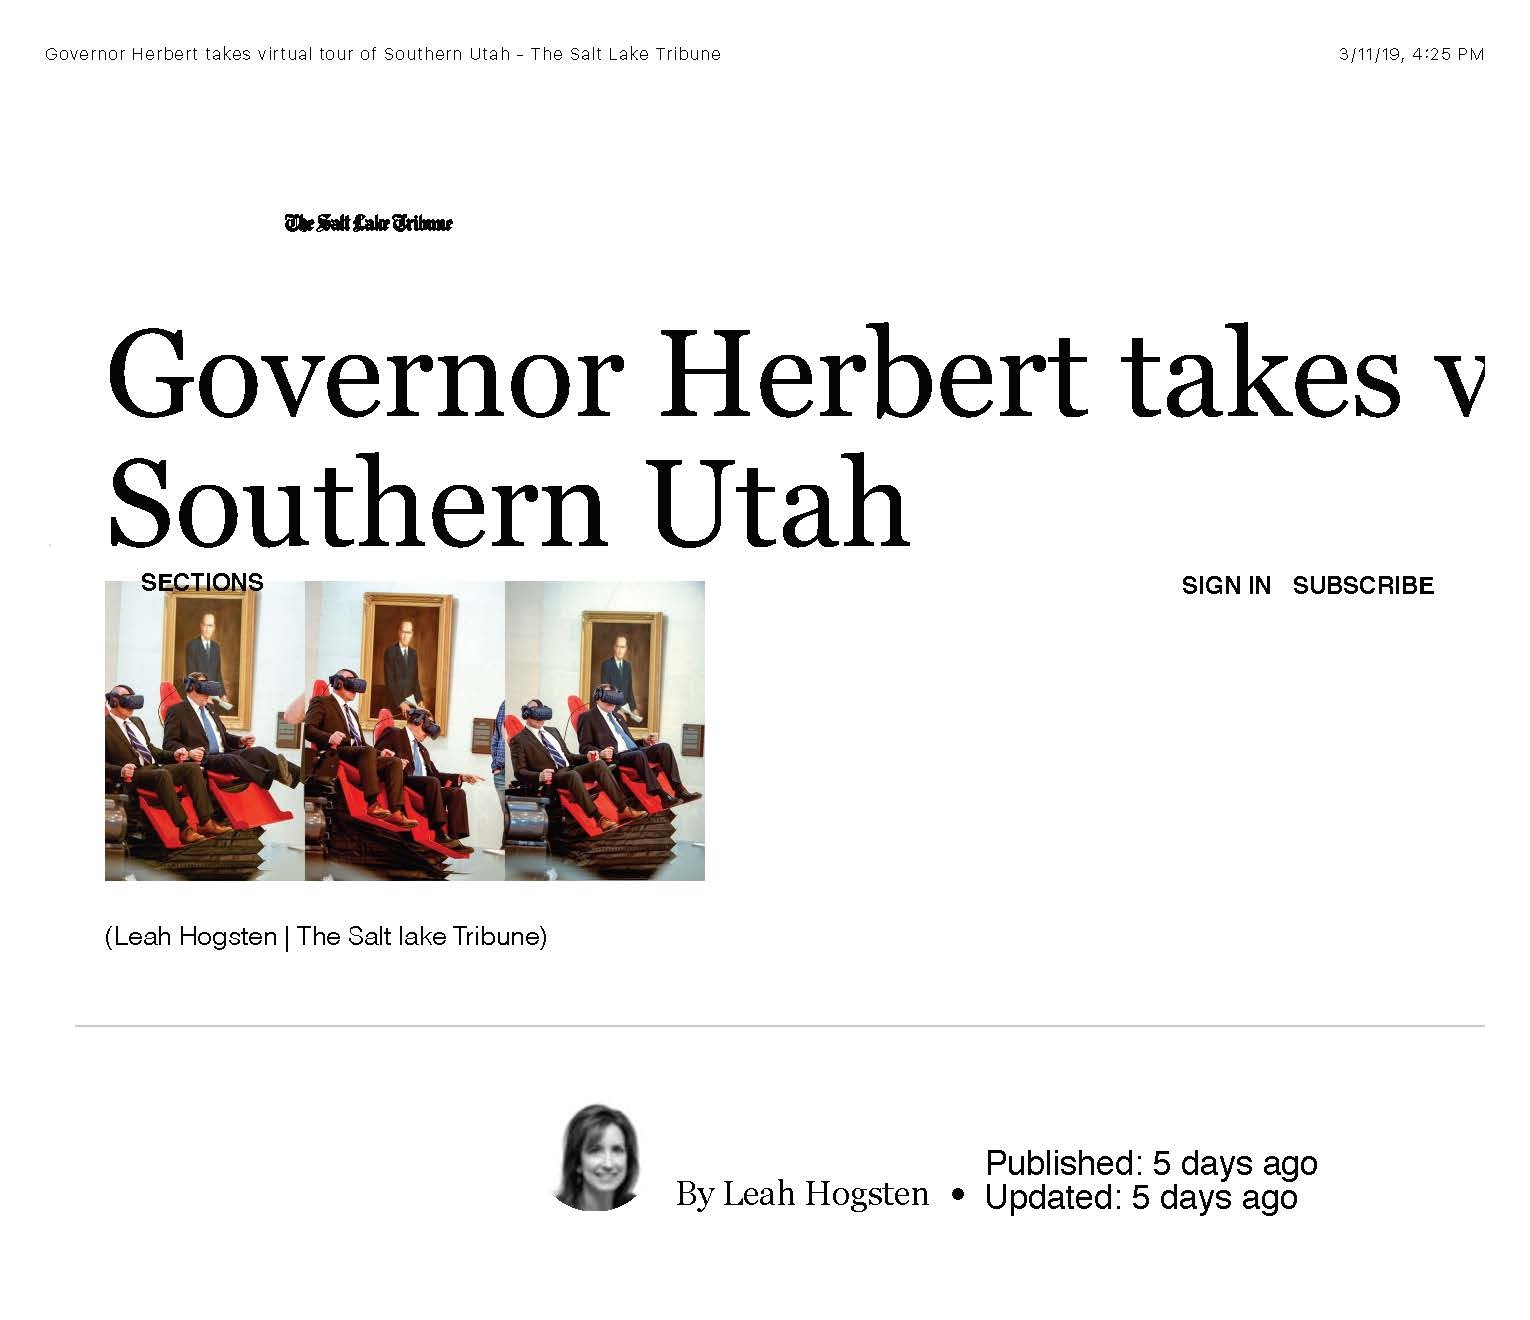 Governor+Herbert+takes+virtual+tour+of+Southern+Utah+-+The+Salt+Lake+Tribune_Page_1.jpg